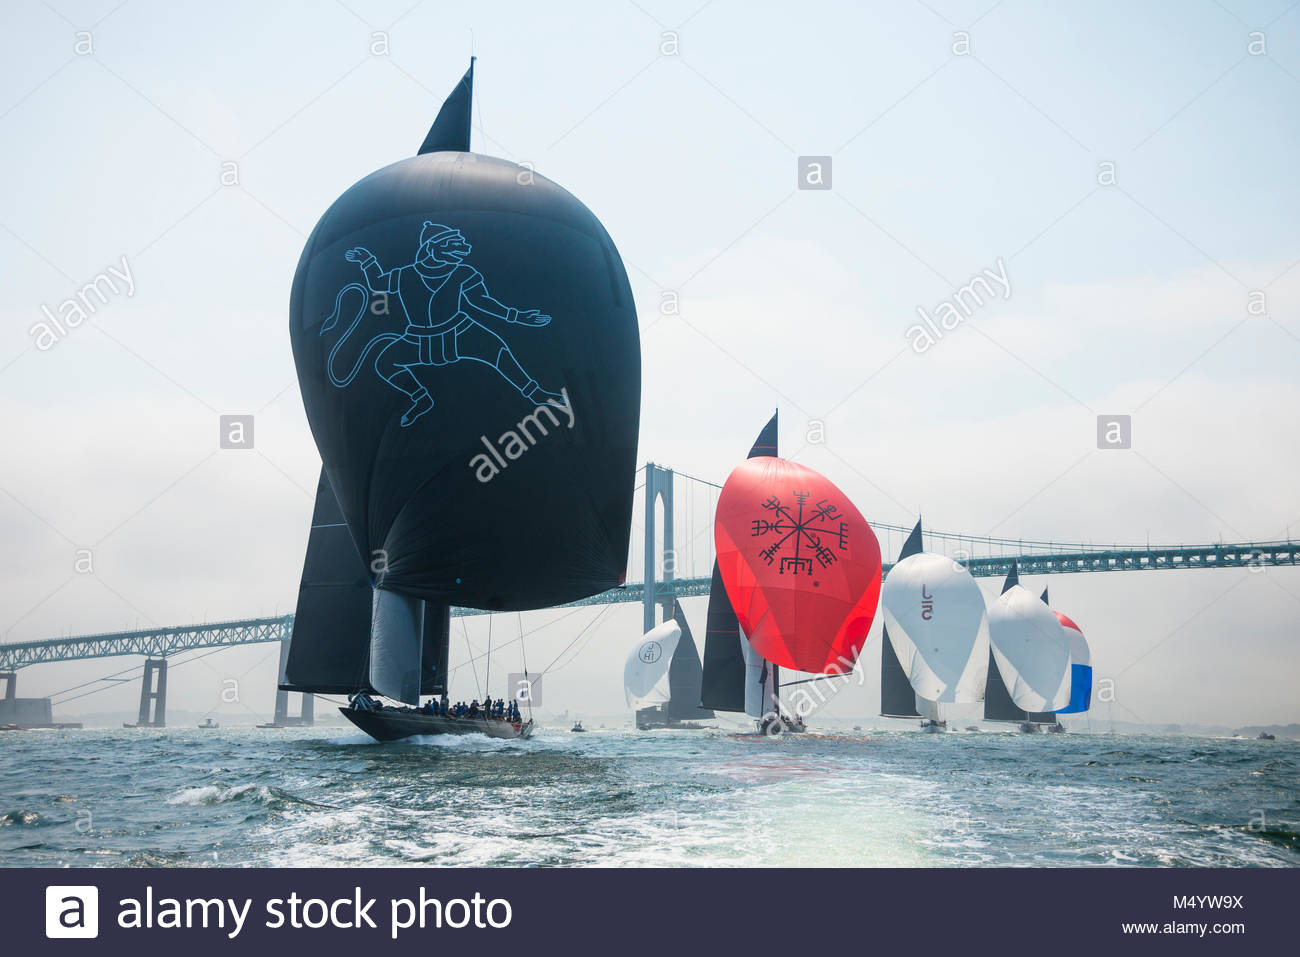 The fleet sailing downwind under the Newport Bridge in the first race of the J Class World Championship hosted in Stock Photo